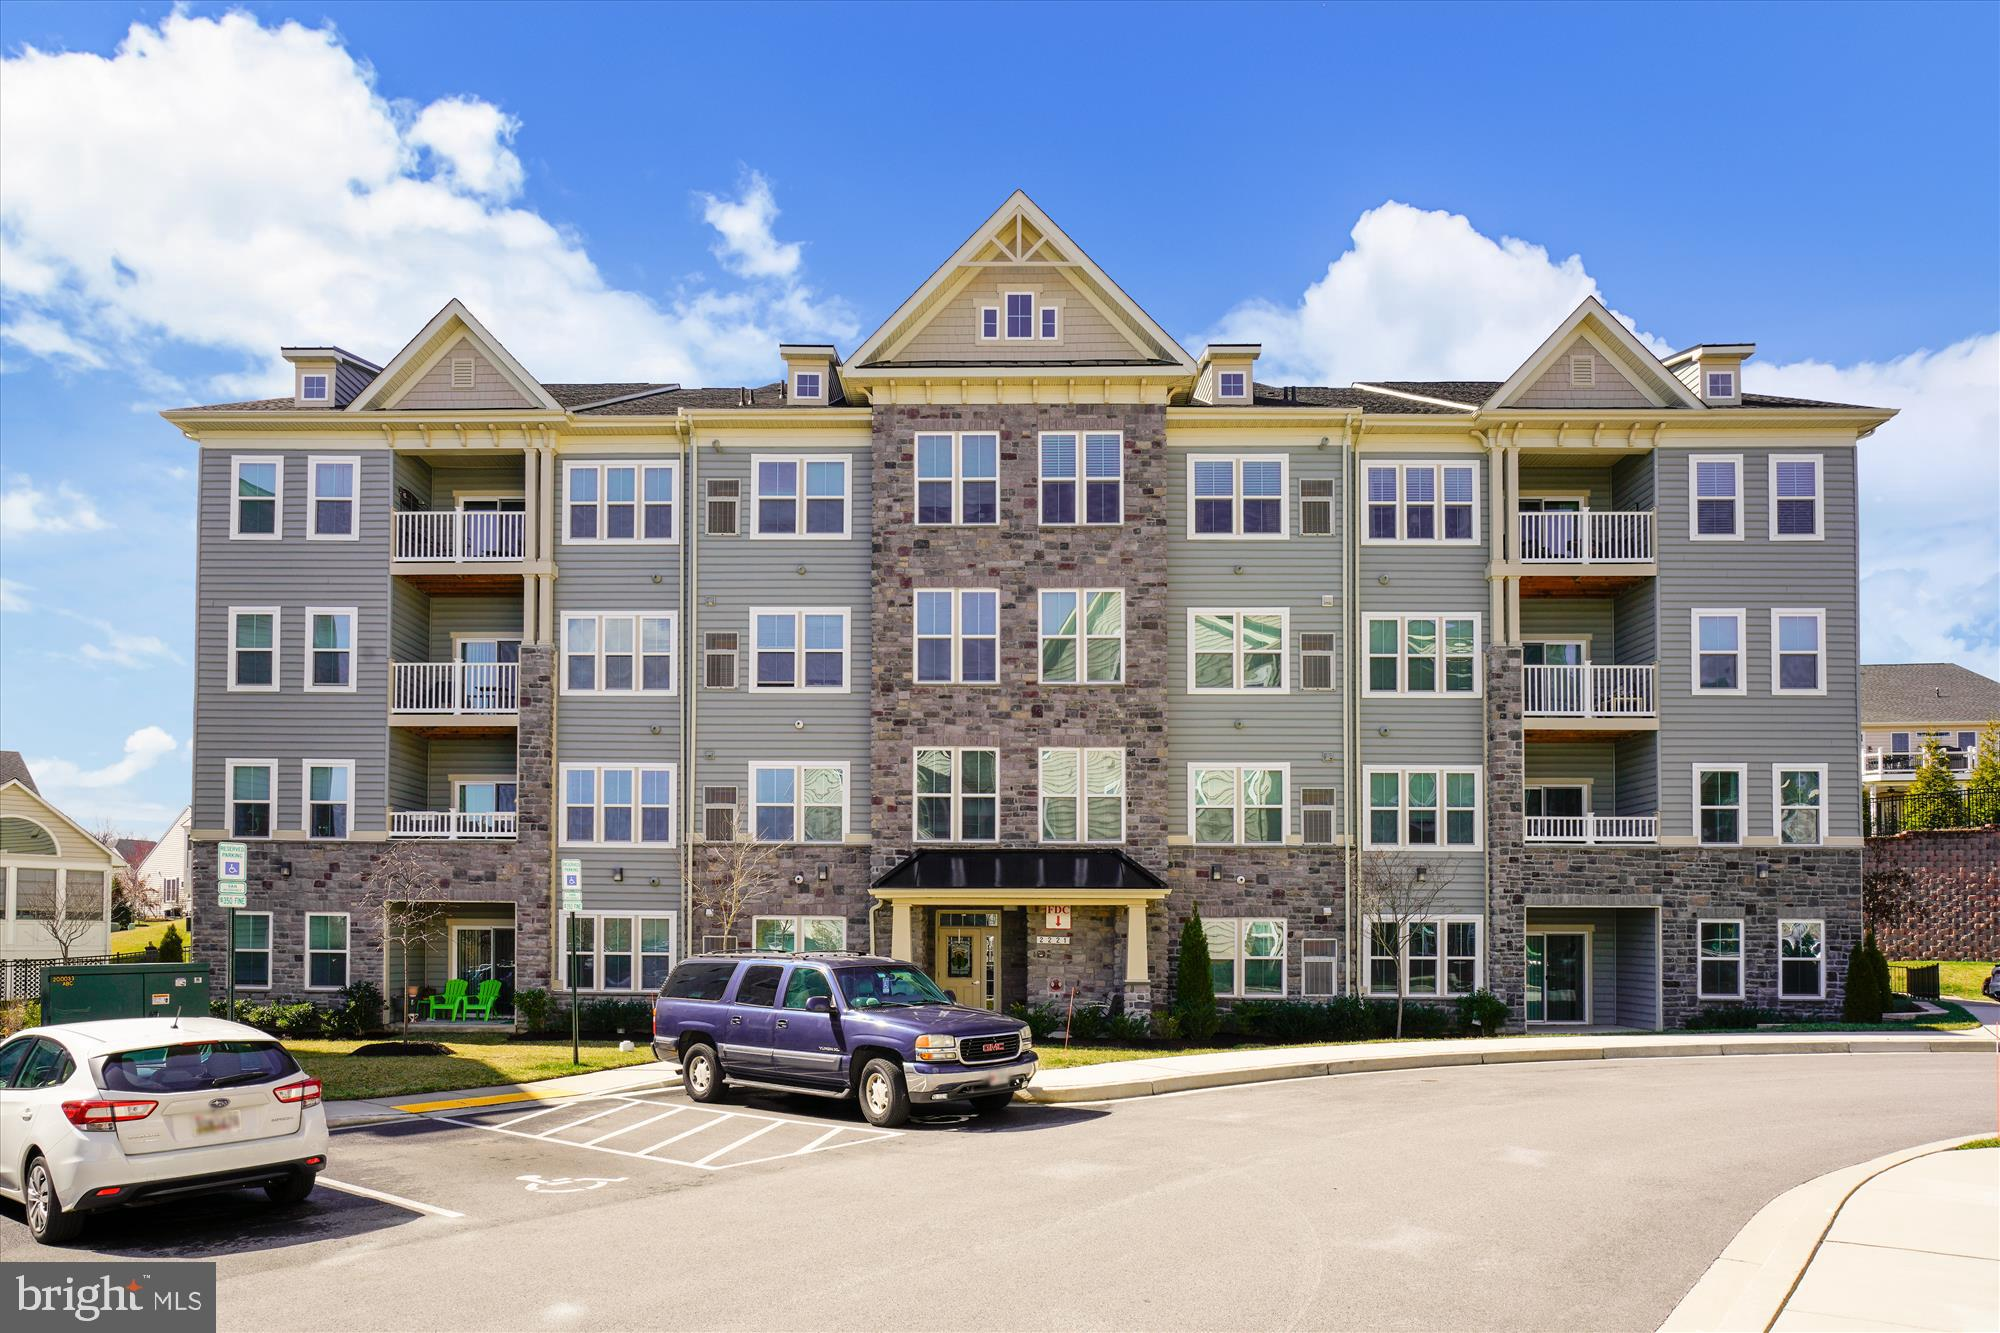 55+ community built in 2017 with many amenities, including outdoor pool, fitness center, golf course